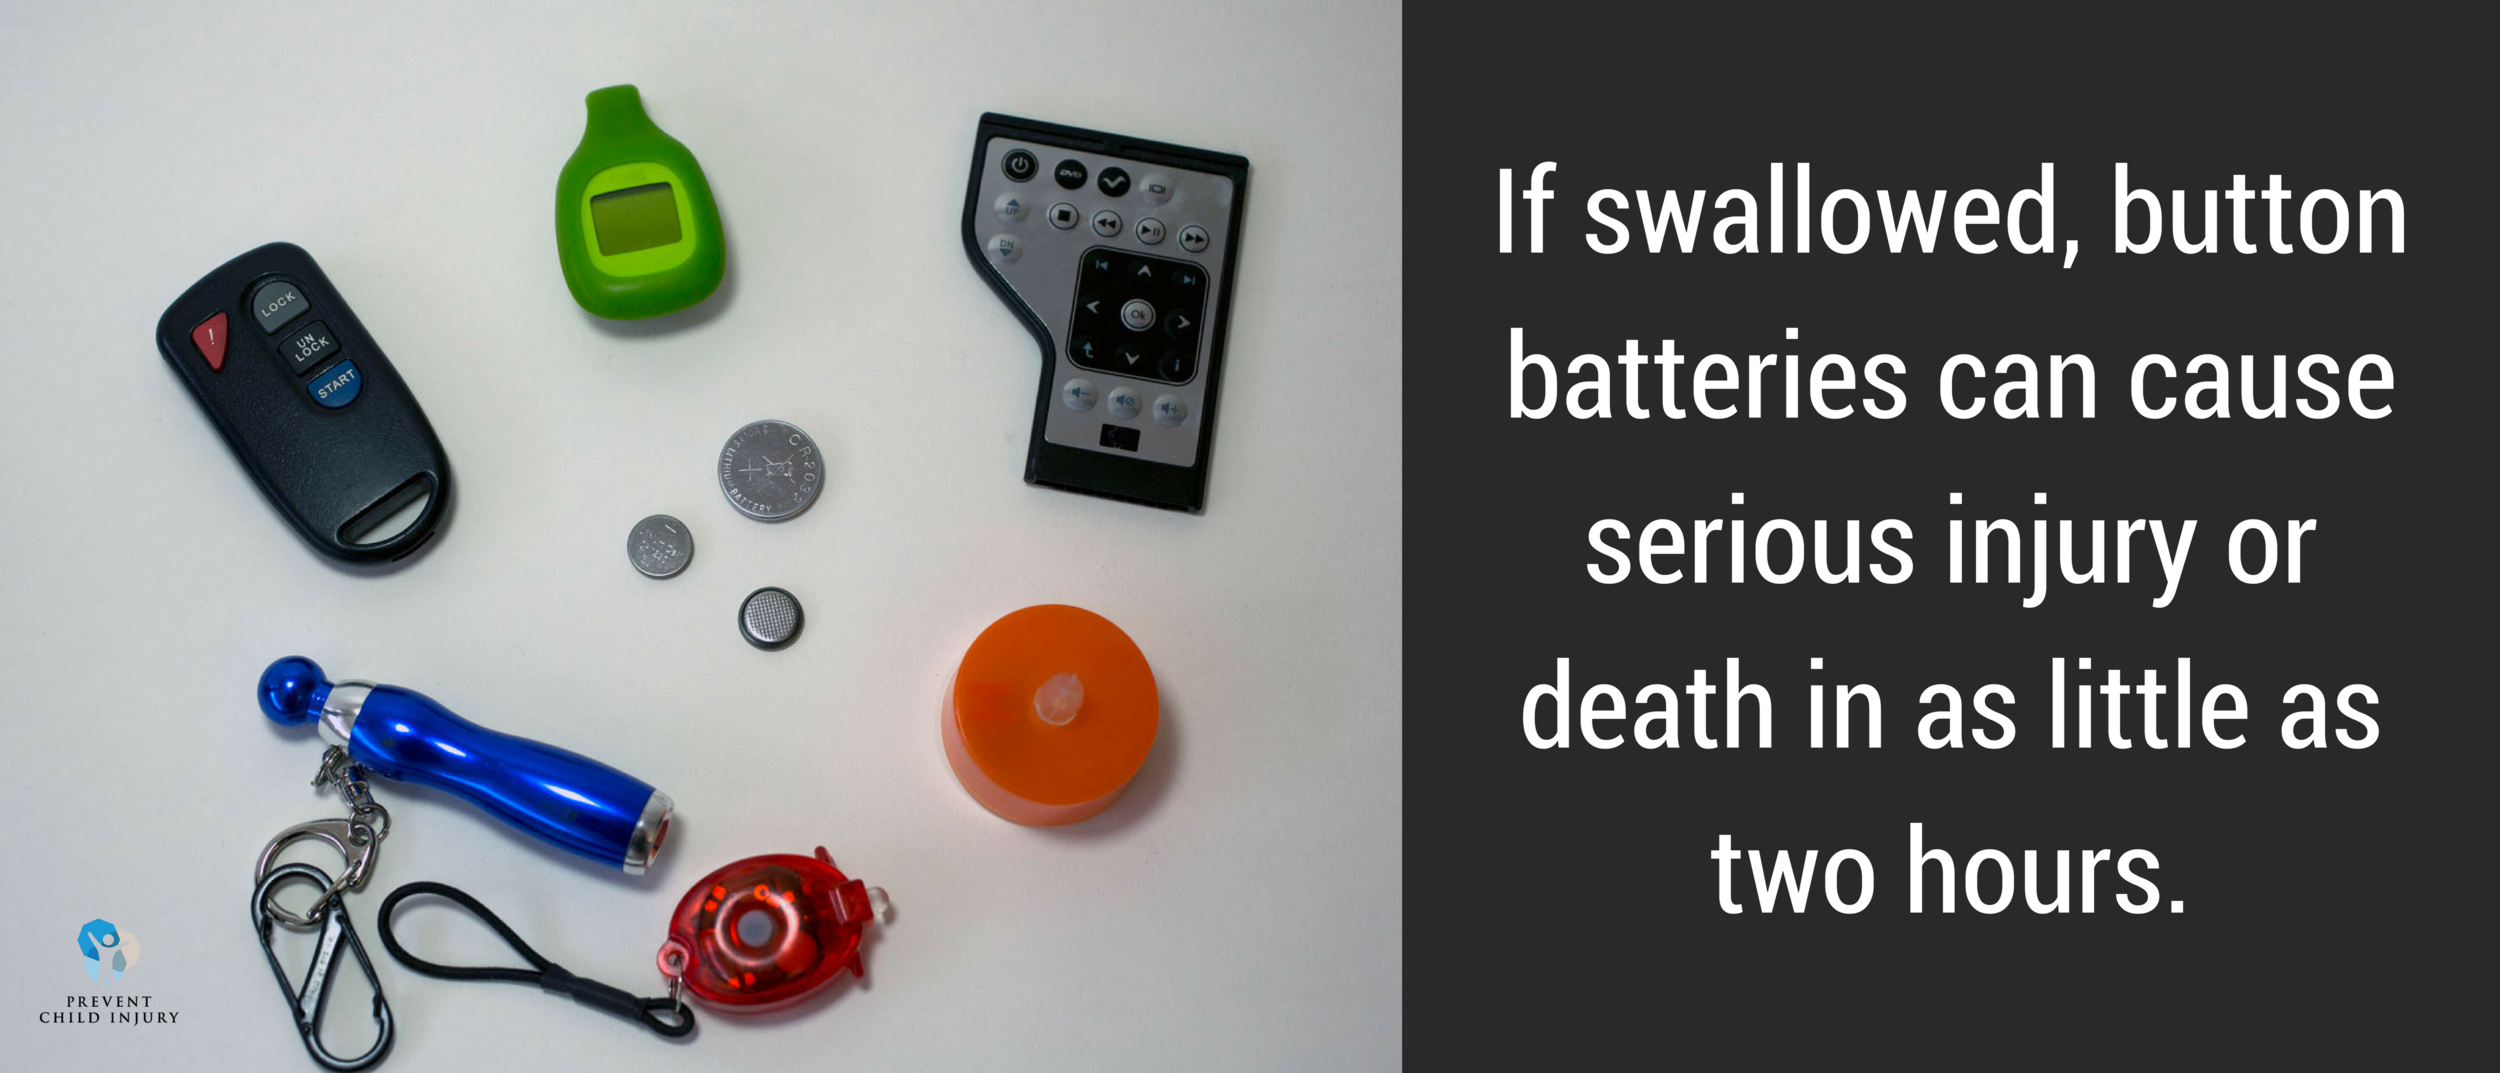 Button battery fact graphic2.png